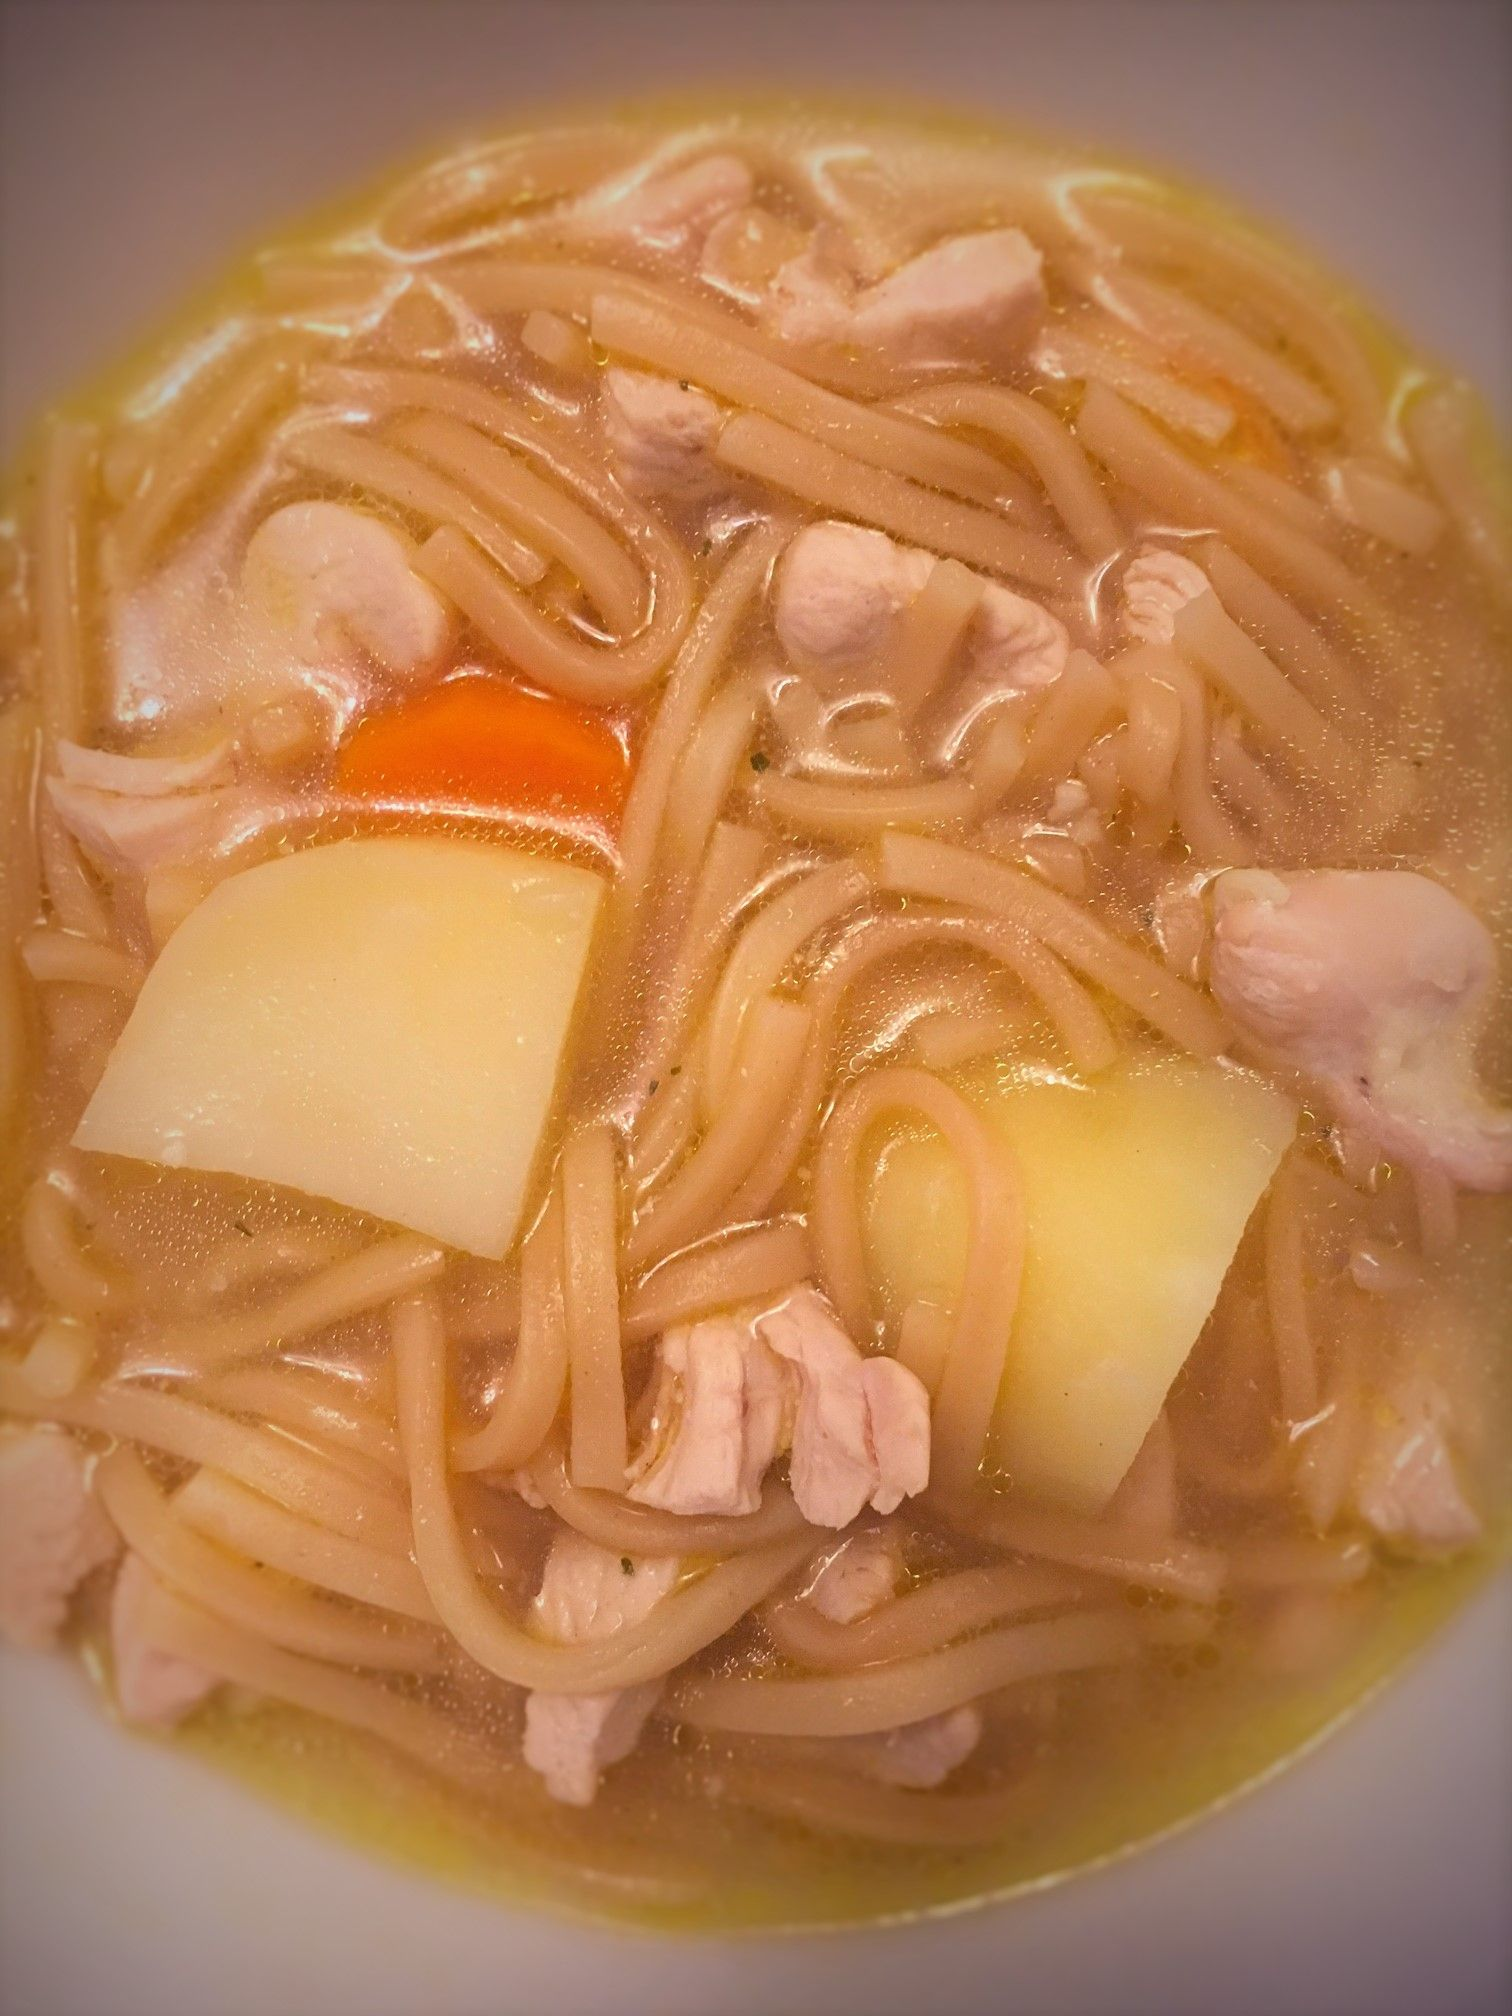 ThisChicken NoodleSoup is a really nutritious and filling soup. I don't usually use the chunky setting on my Morphy Richards soup maker, but this soup has reminded me I really should. I actually had this soup for my dinner last night, the inclusion of noodles and potatoes made it a substantial enough meal for a …